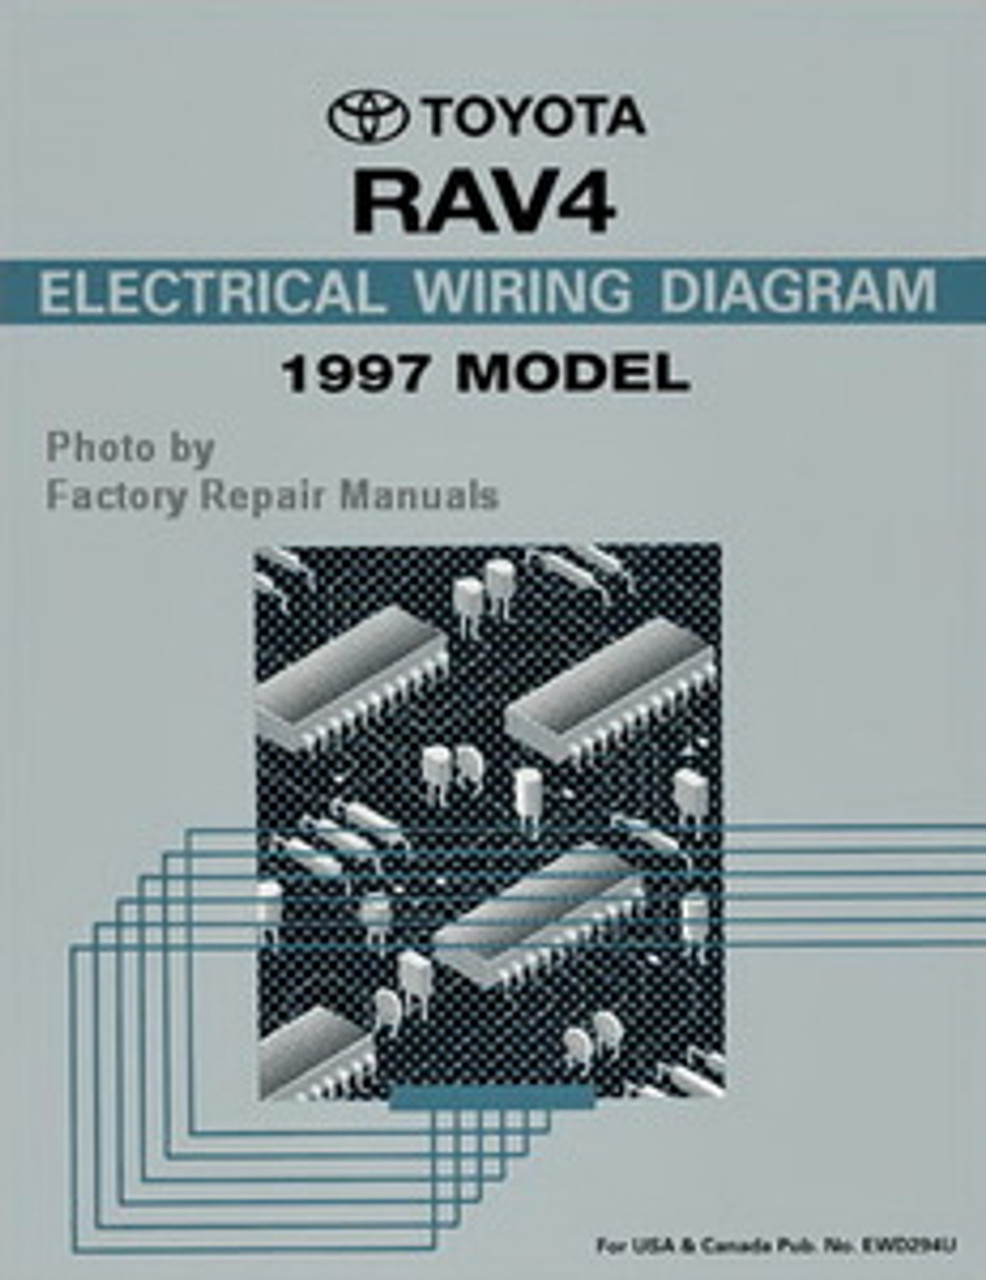 1997 Toyota Rav4 Electrical Wiring Diagrams Original Rav 4 Manual